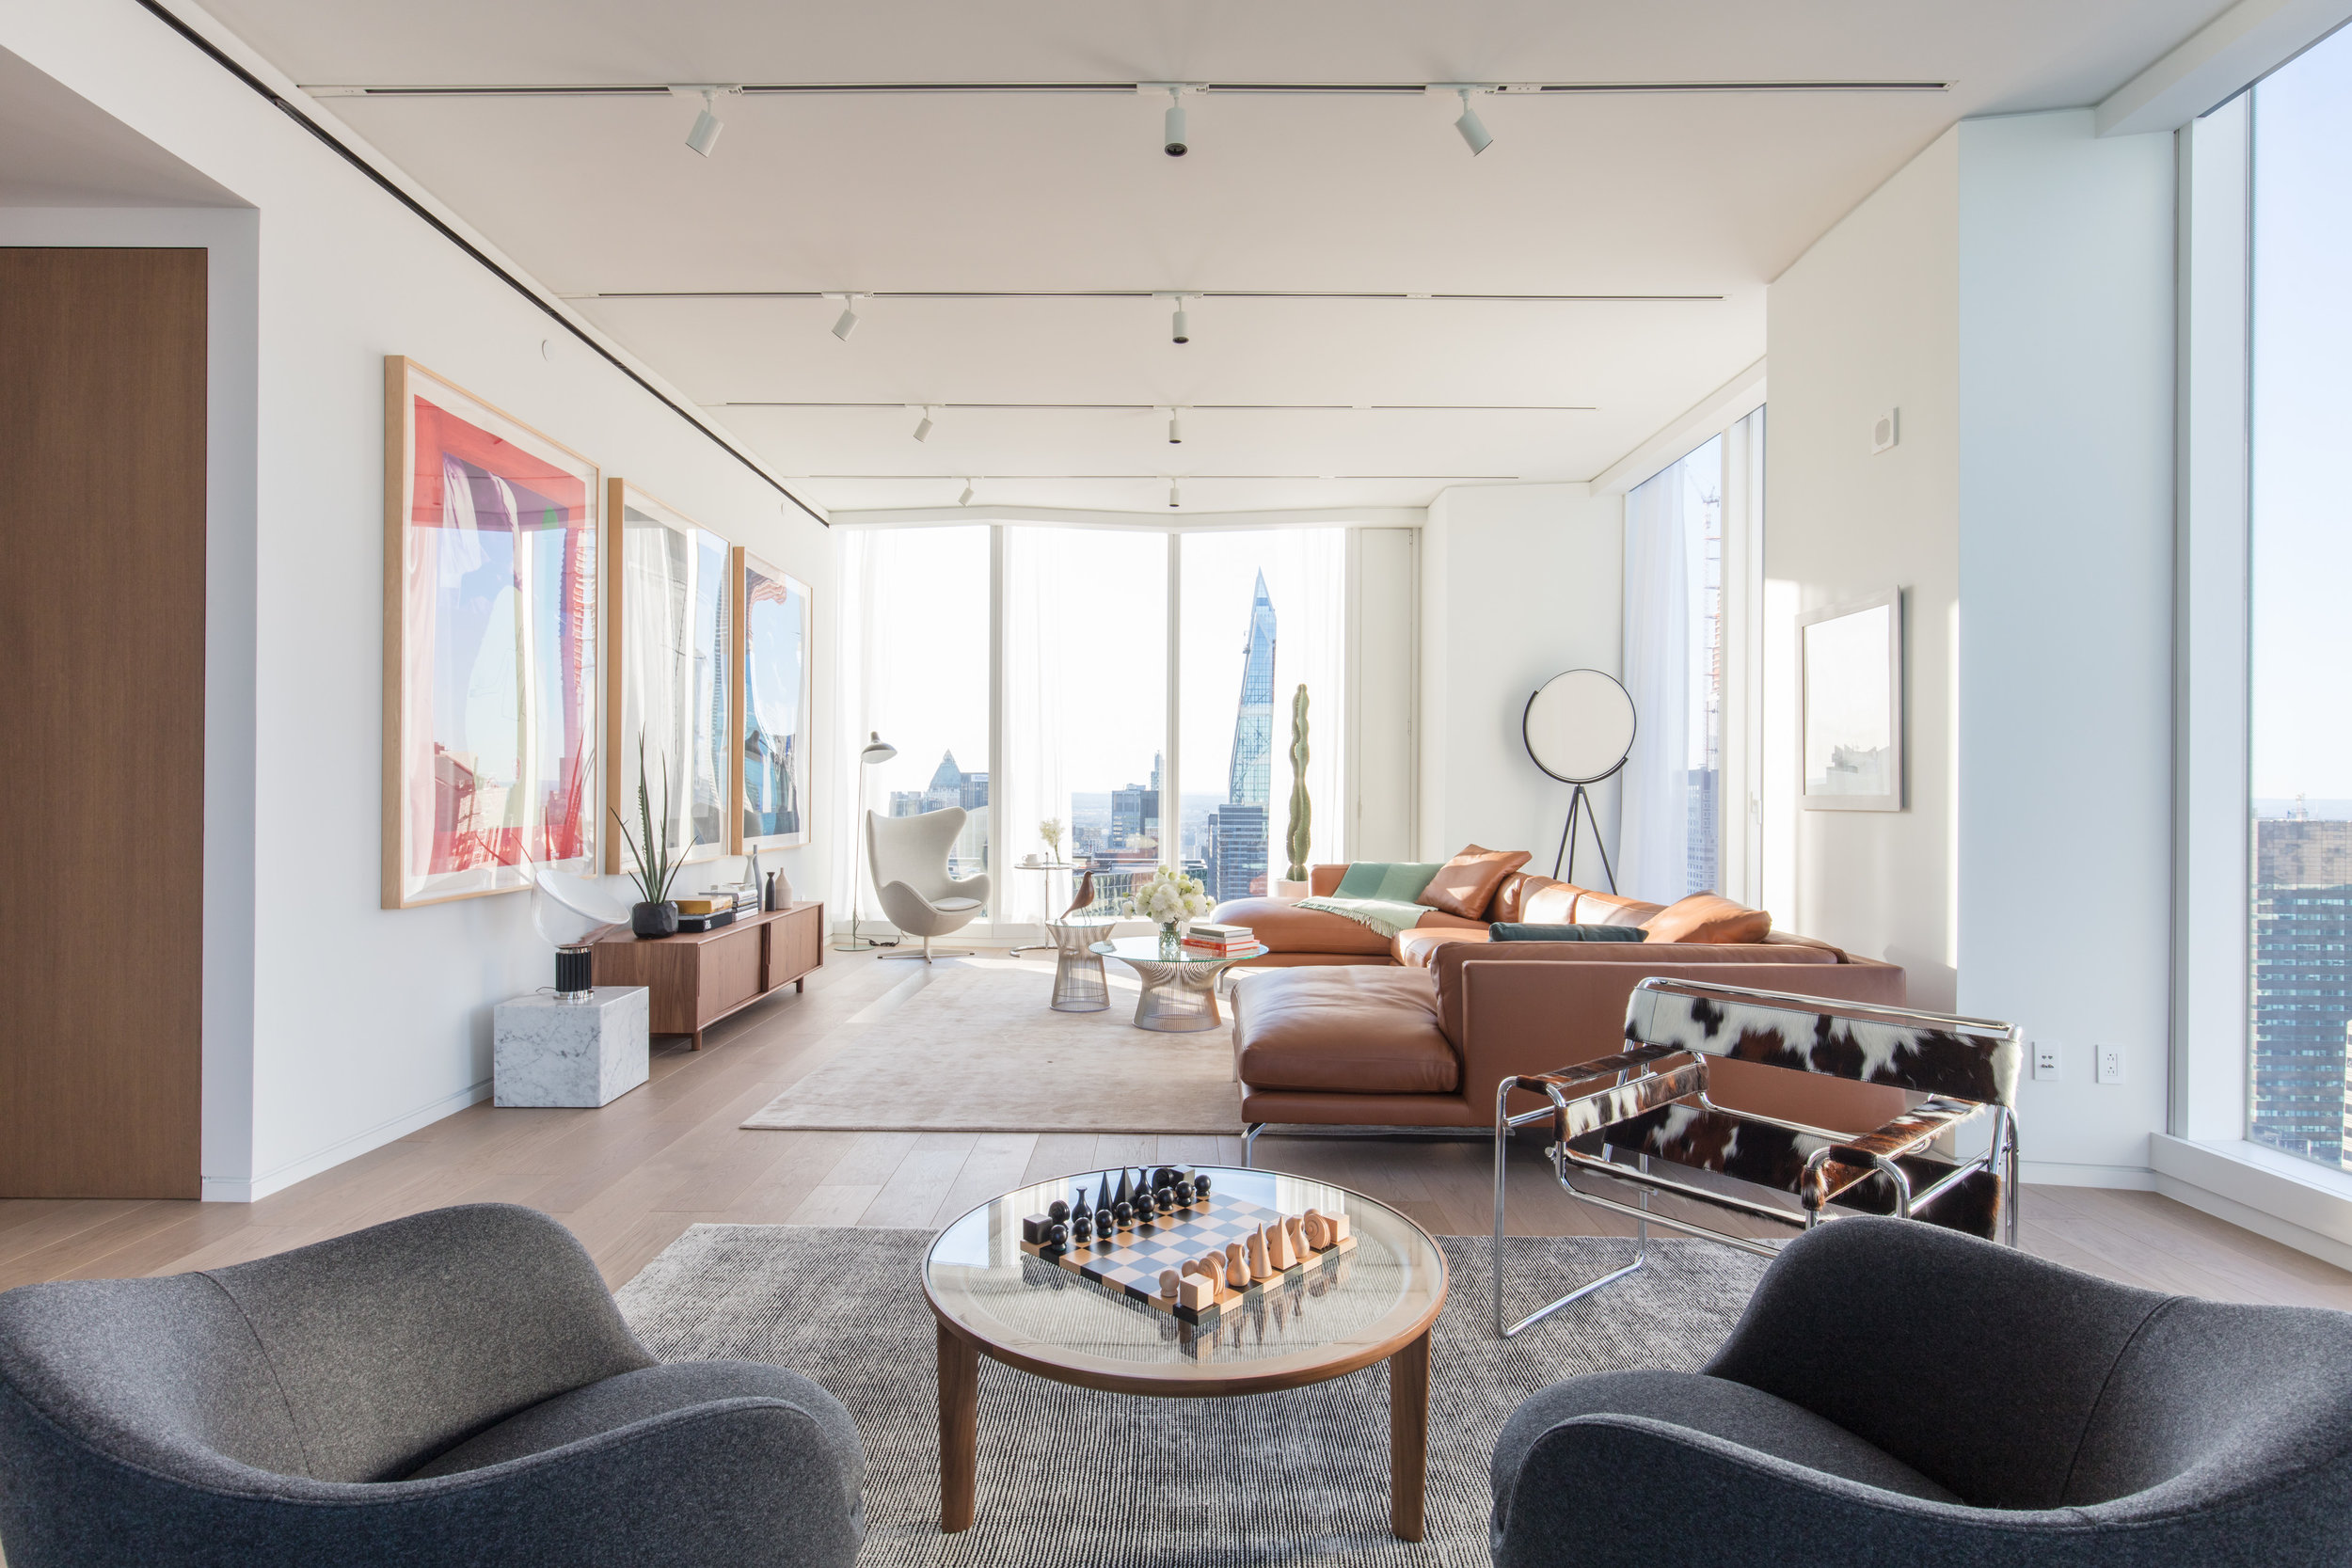 One Hundred East Fifty Third Street Reveals Private Floor Homes Starting At $10 Million